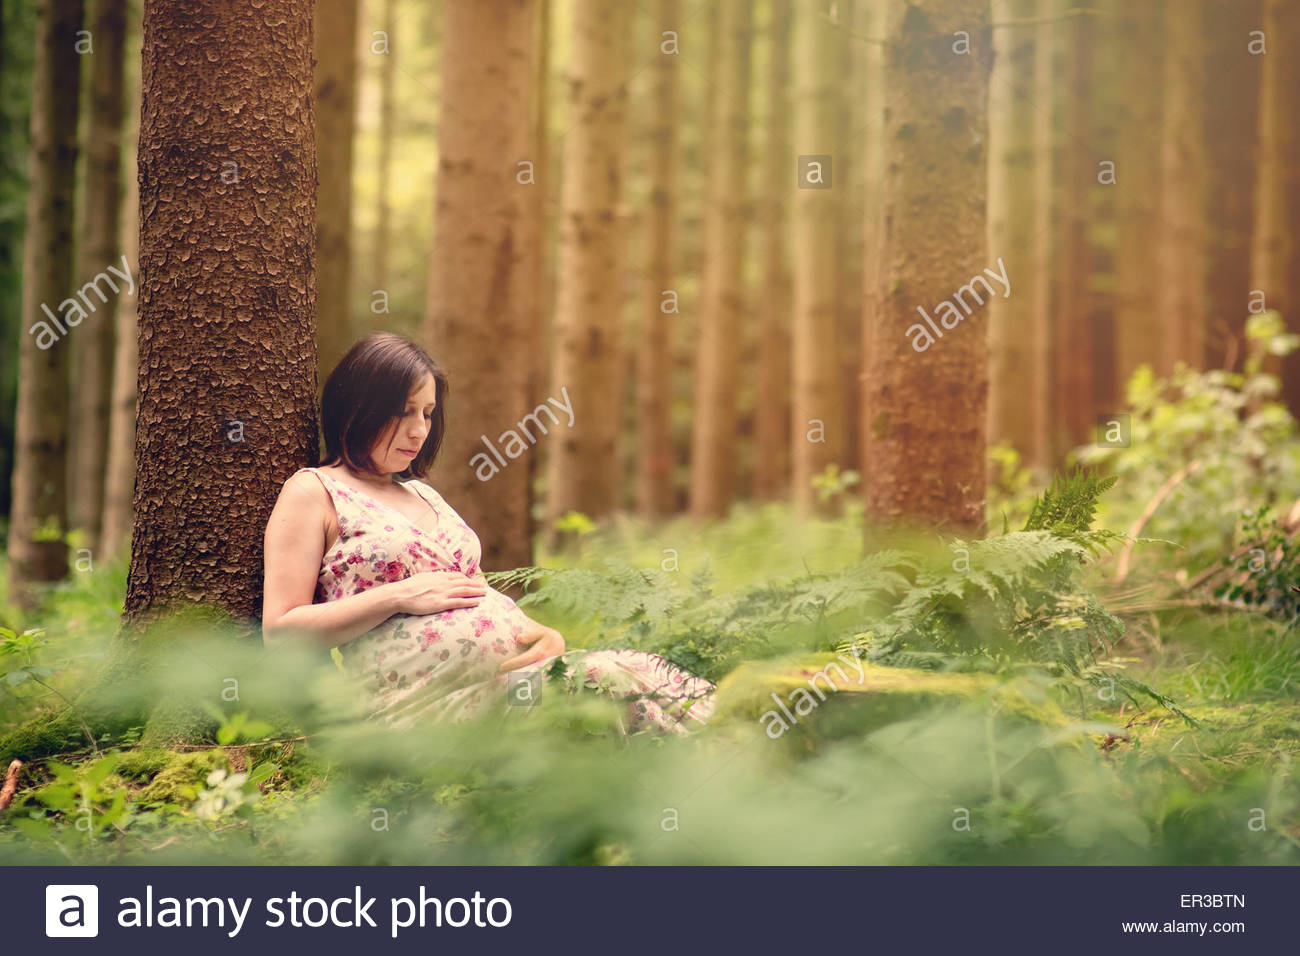 Pregnant woman leaning against a tree in the forest - Stock Image